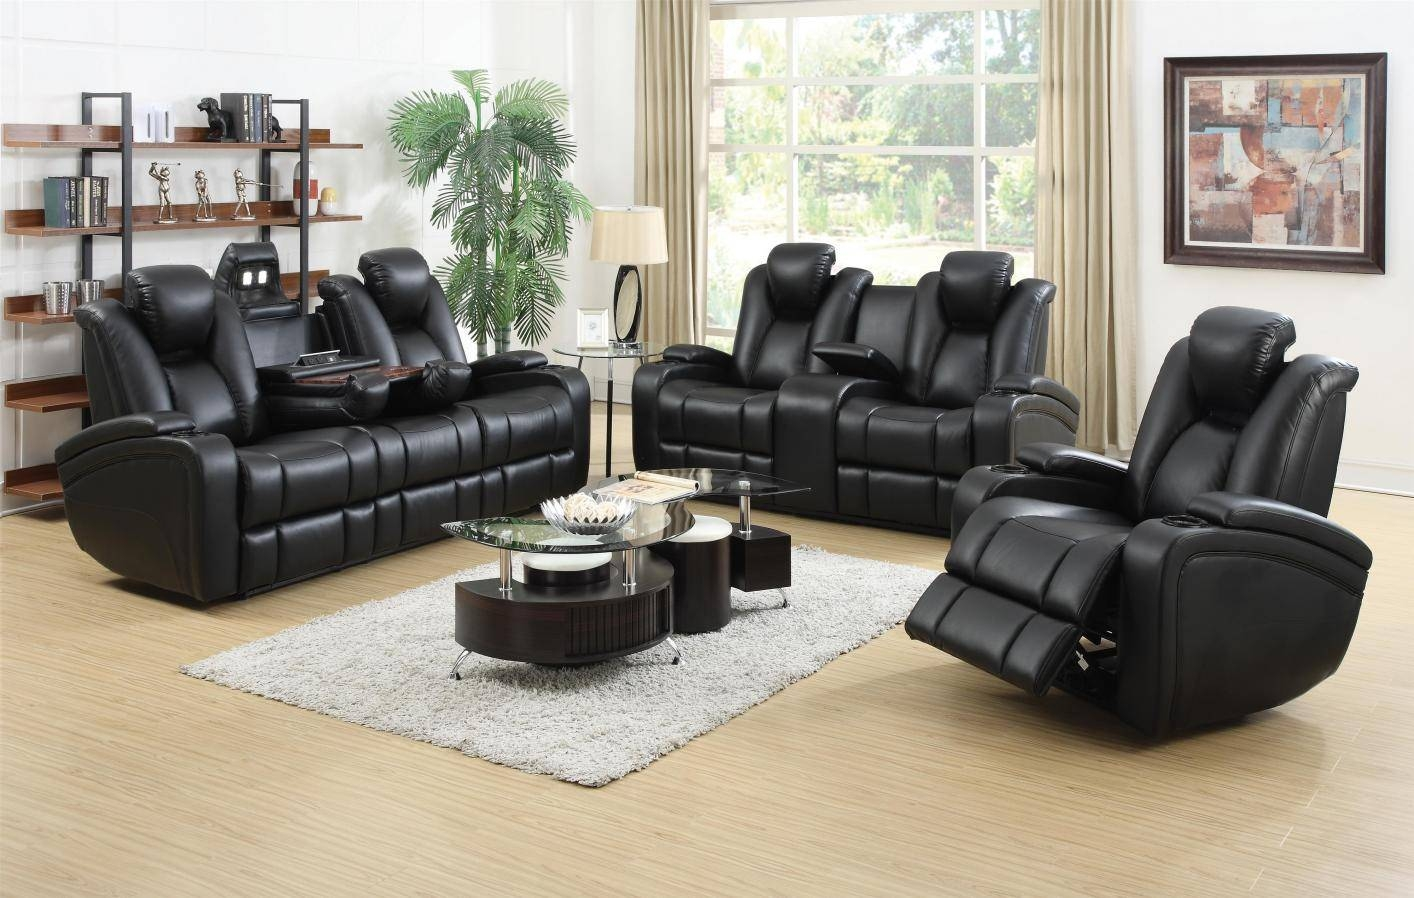 Black Leather Loveseat - Steal-A-Sofa Furniture Outlet Los Angeles Ca inside Black Leather Sofas and Loveseats (Image 1 of 15)